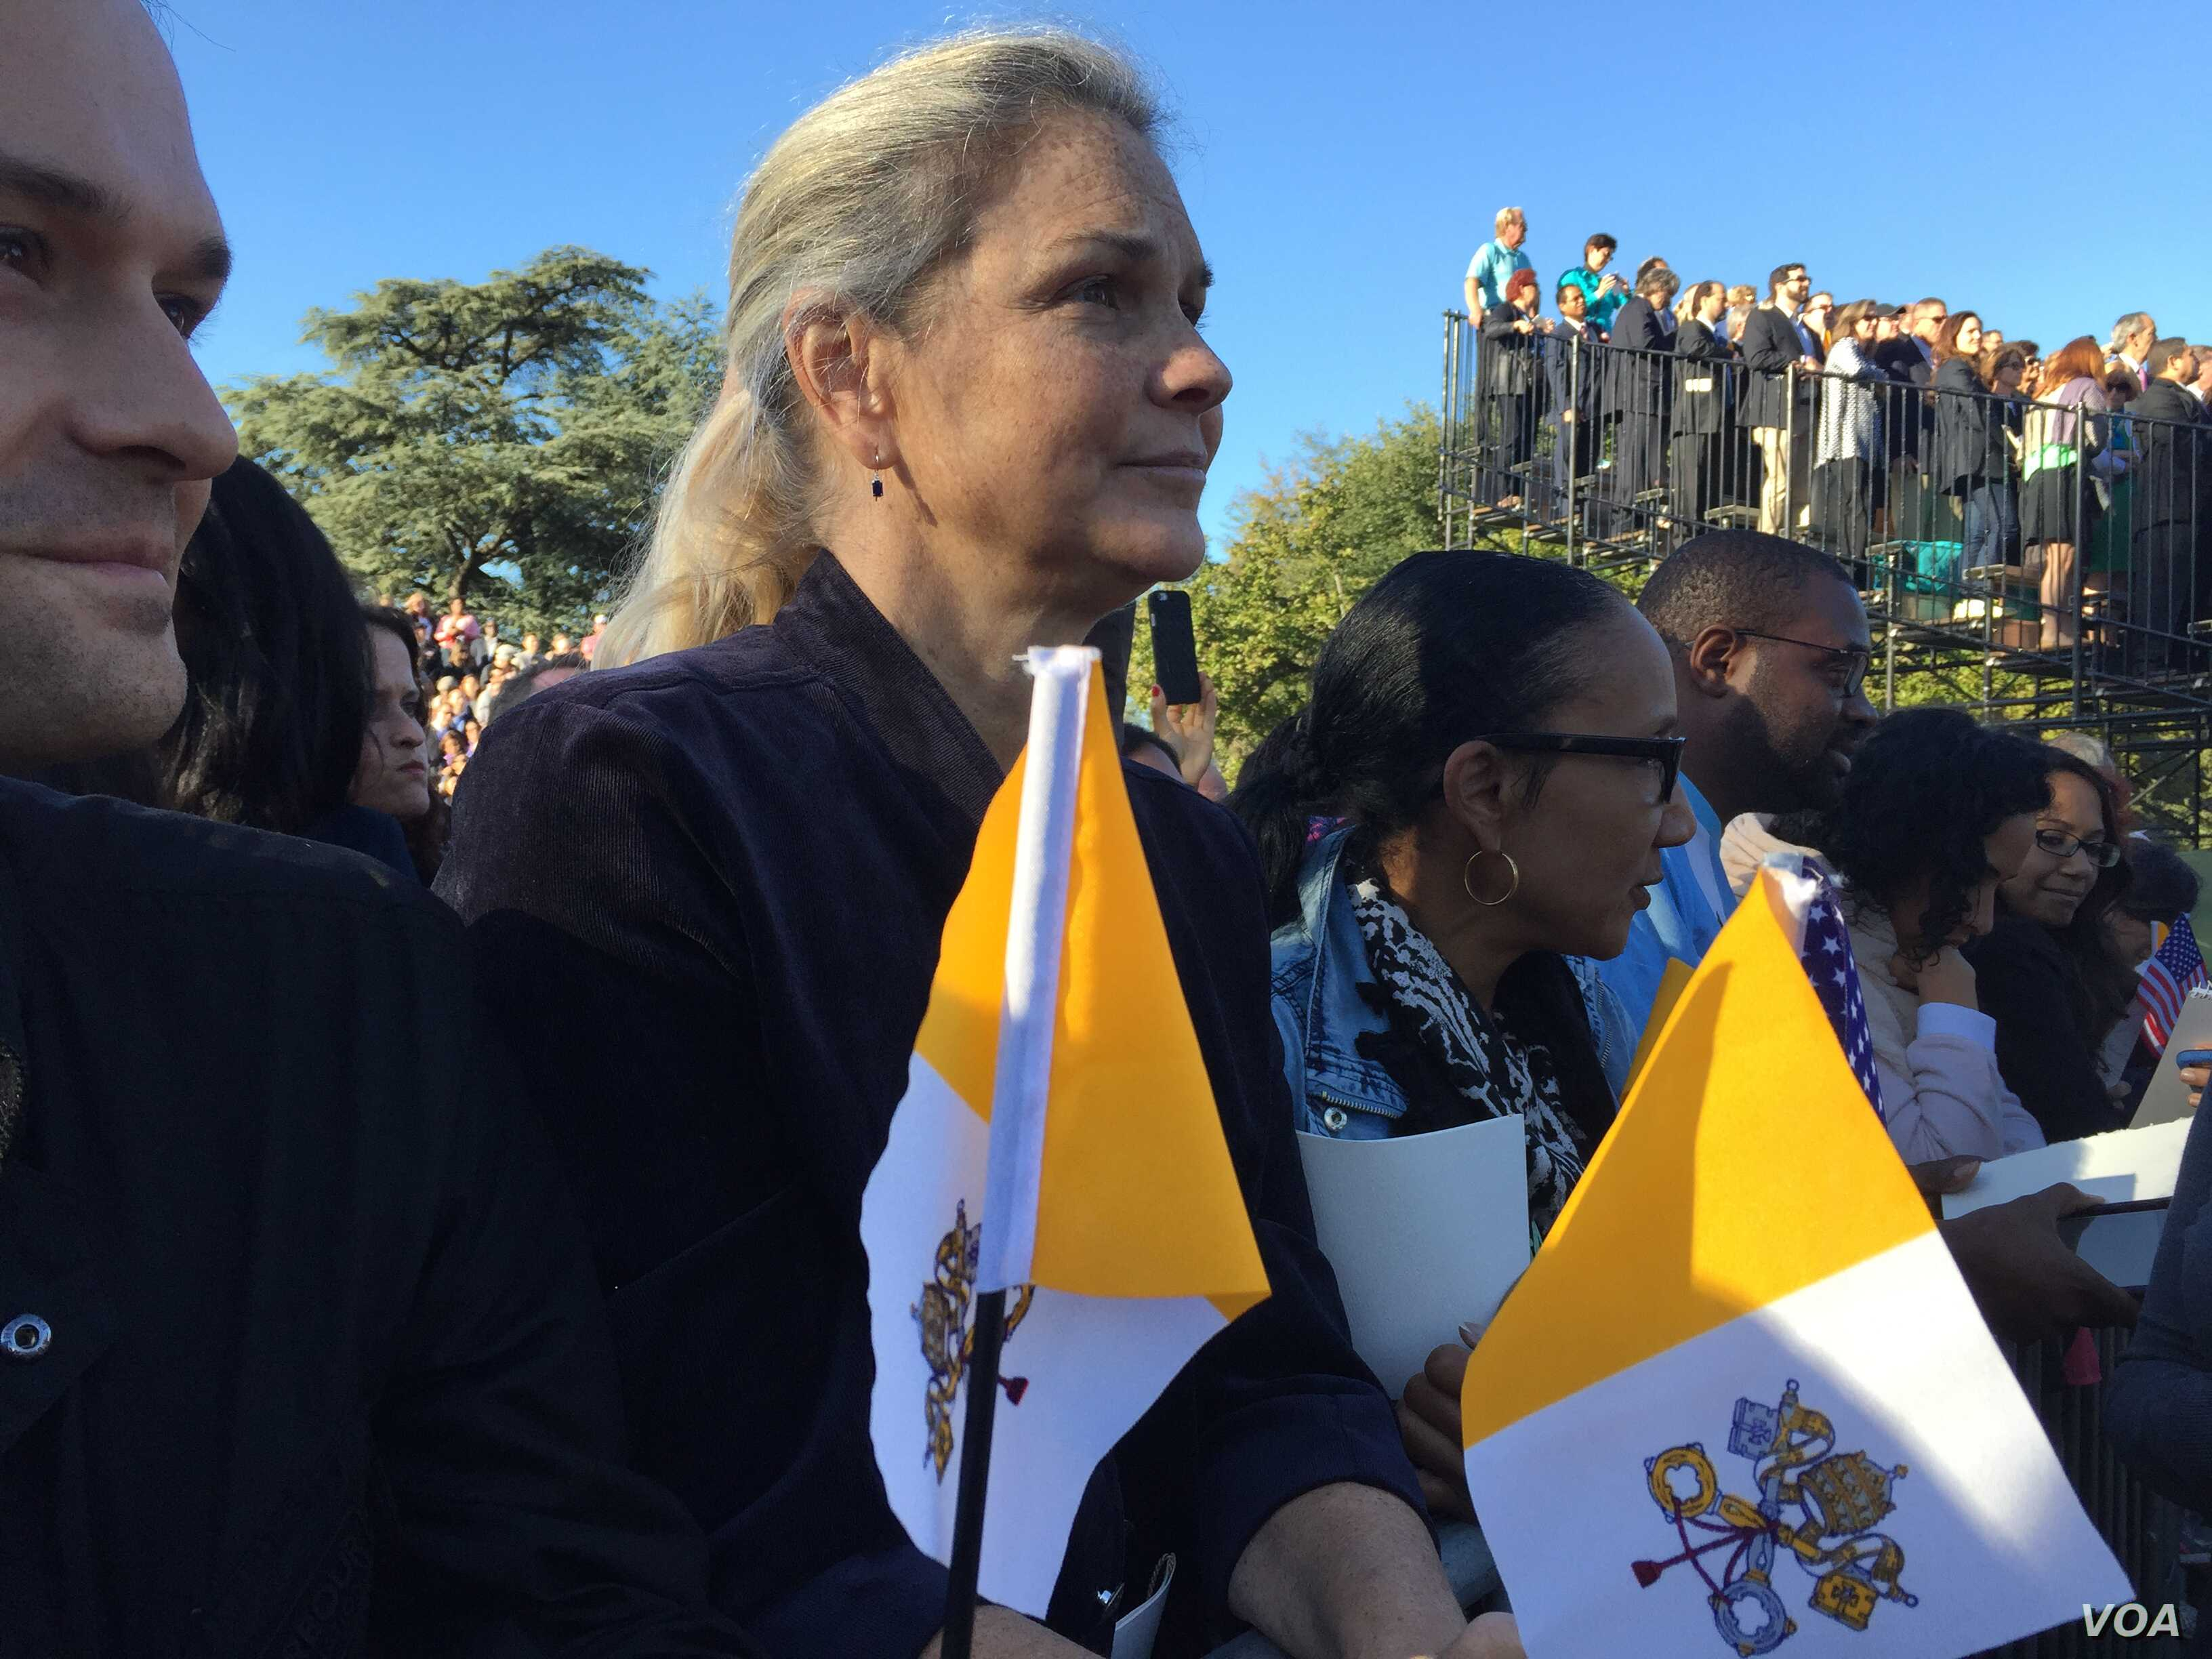 Christina Toth from Boyds, Maryland, waits to see Pope Francis arrive at the White House, Sept. 23, 2015. (A. Pande/VOA)